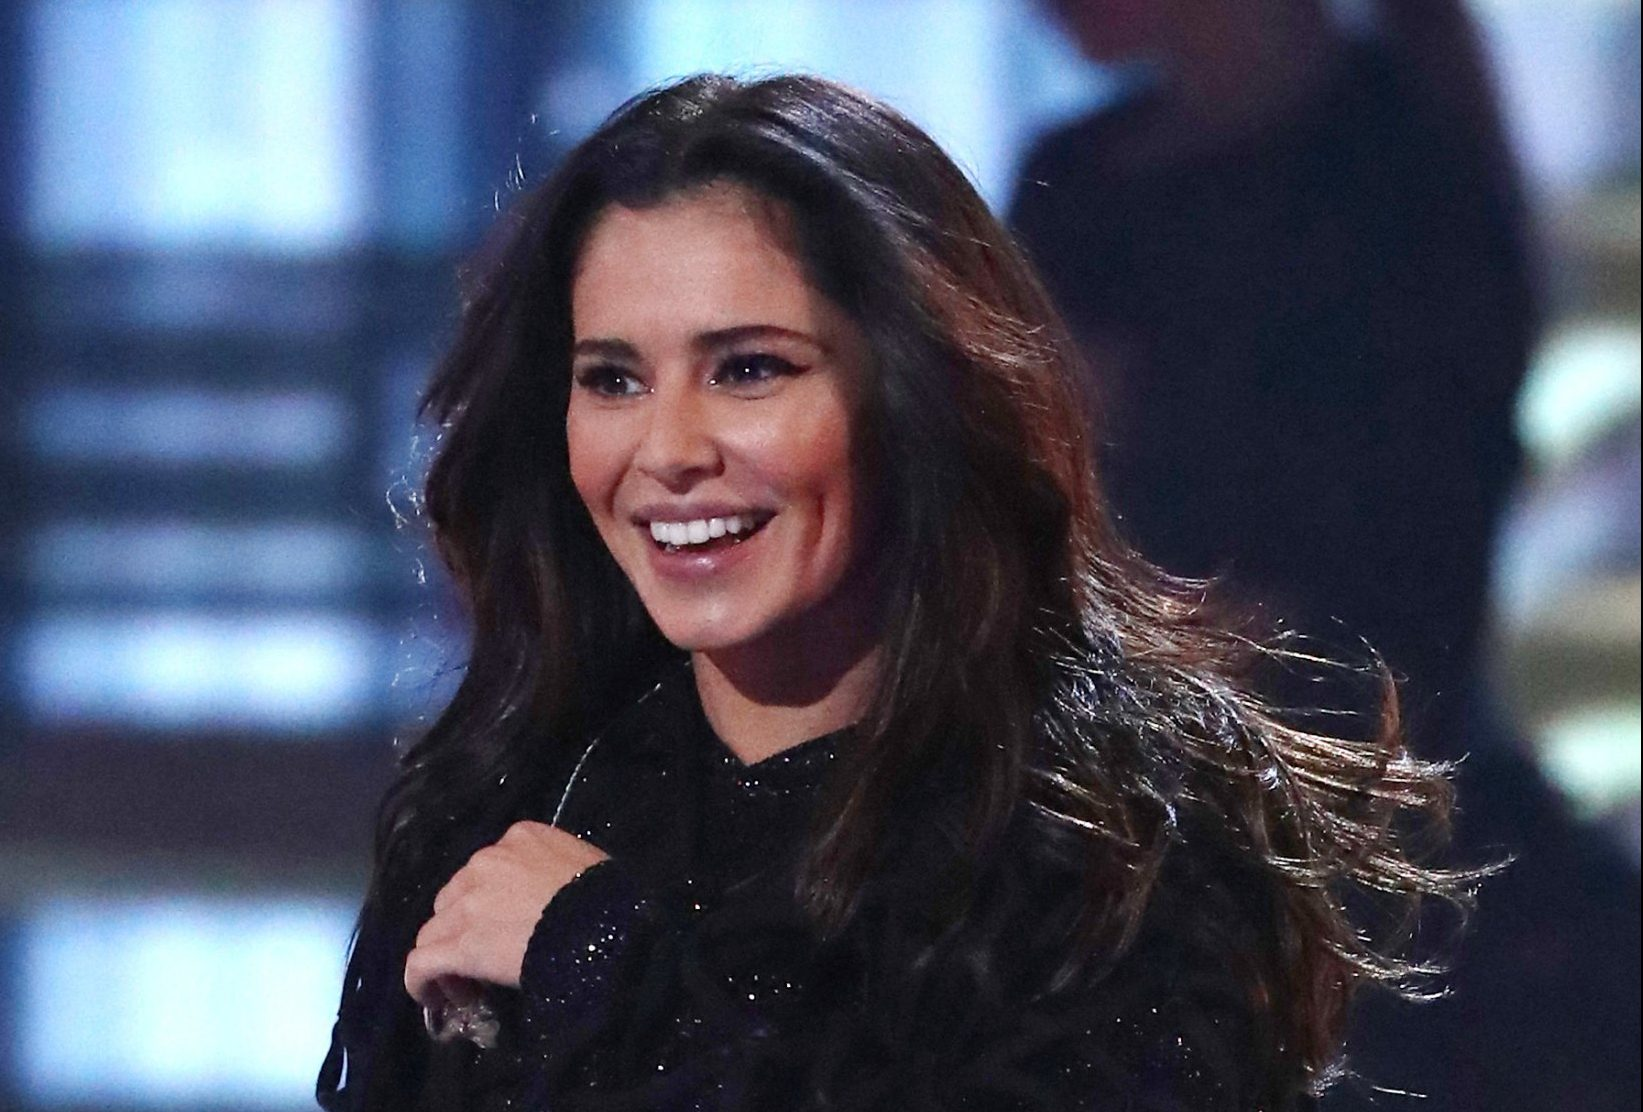 EDITORIAL USE ONLY - NO BOOK PUBLISHING Mandatory Credit: Photo by Dymond/Thames/Syco/REX/Shutterstock (9982288bl) Cheryl 'The X Factor' TV show, Series 15, Episode 24, London, UK - 18 Nov 2018